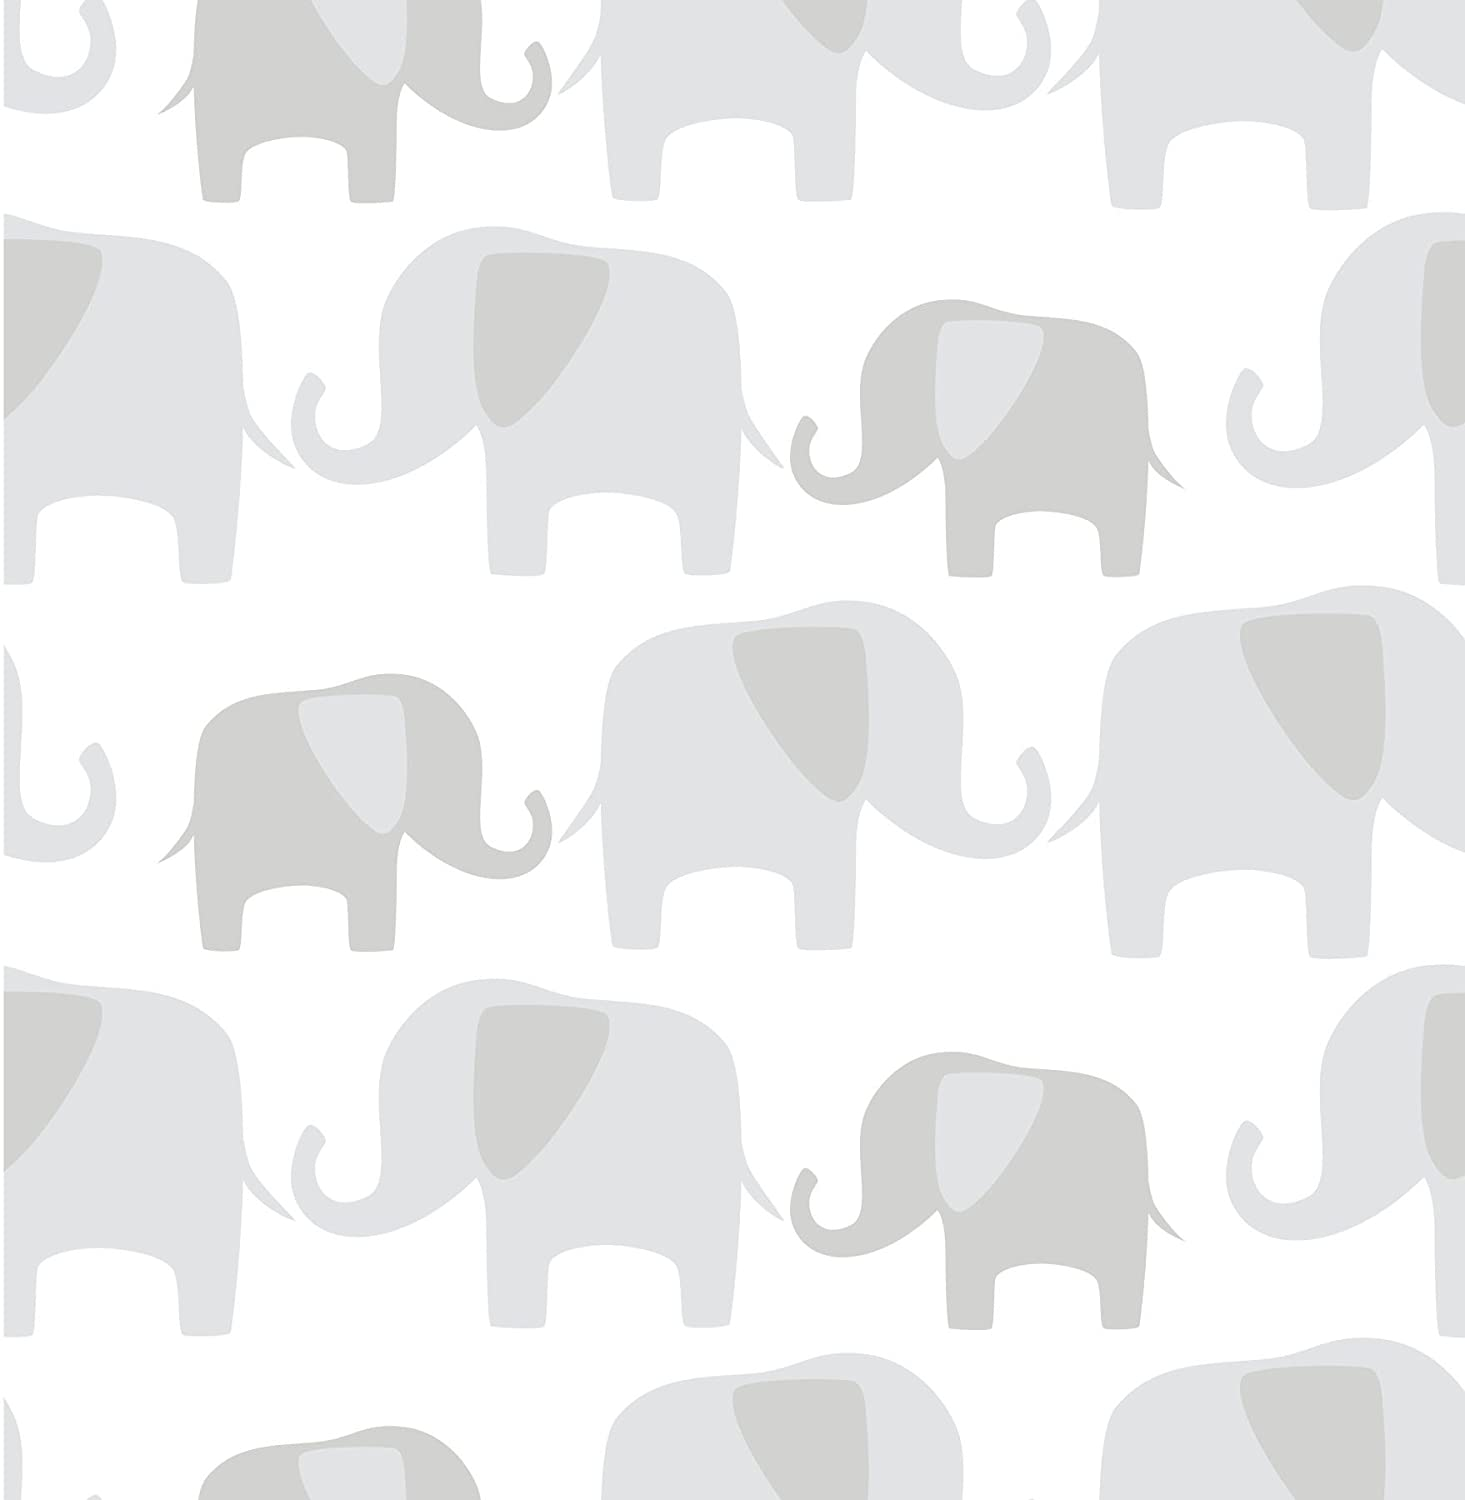 Amazoncom Wall Pops NU1405 Gray Elephant Parade Peel and Stick